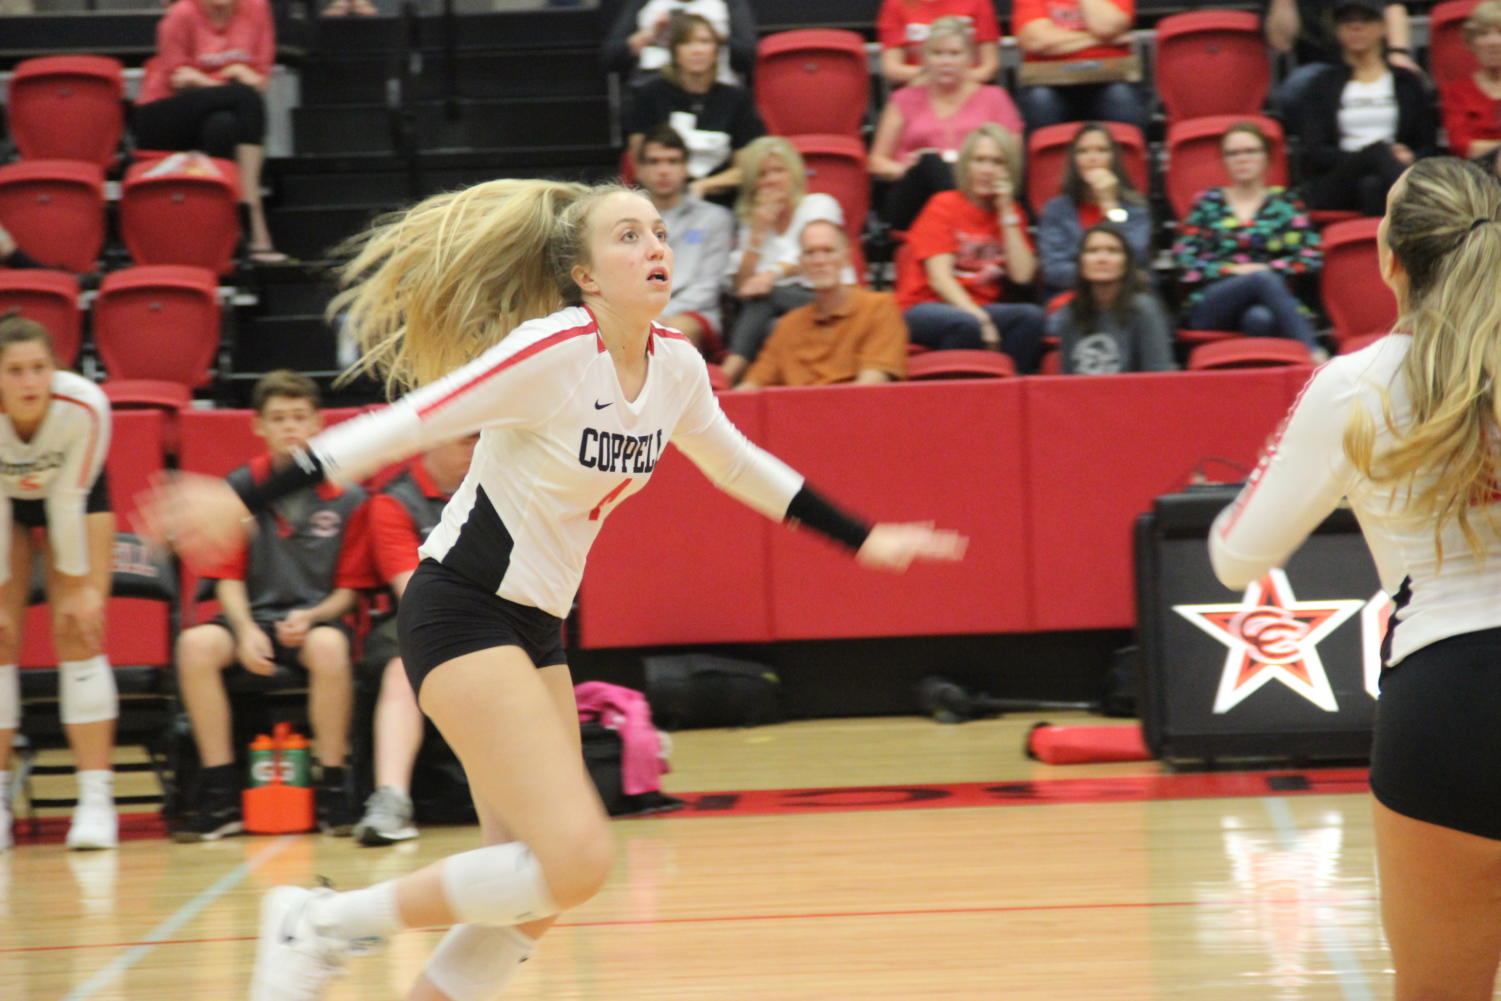 Coppell senior Peyton Minyard prepares to spike during the match against Arlington Martin on Aug. 27 in the CHS Arena. Minyard committed to Boston College and will receive a volleyball scholarship.